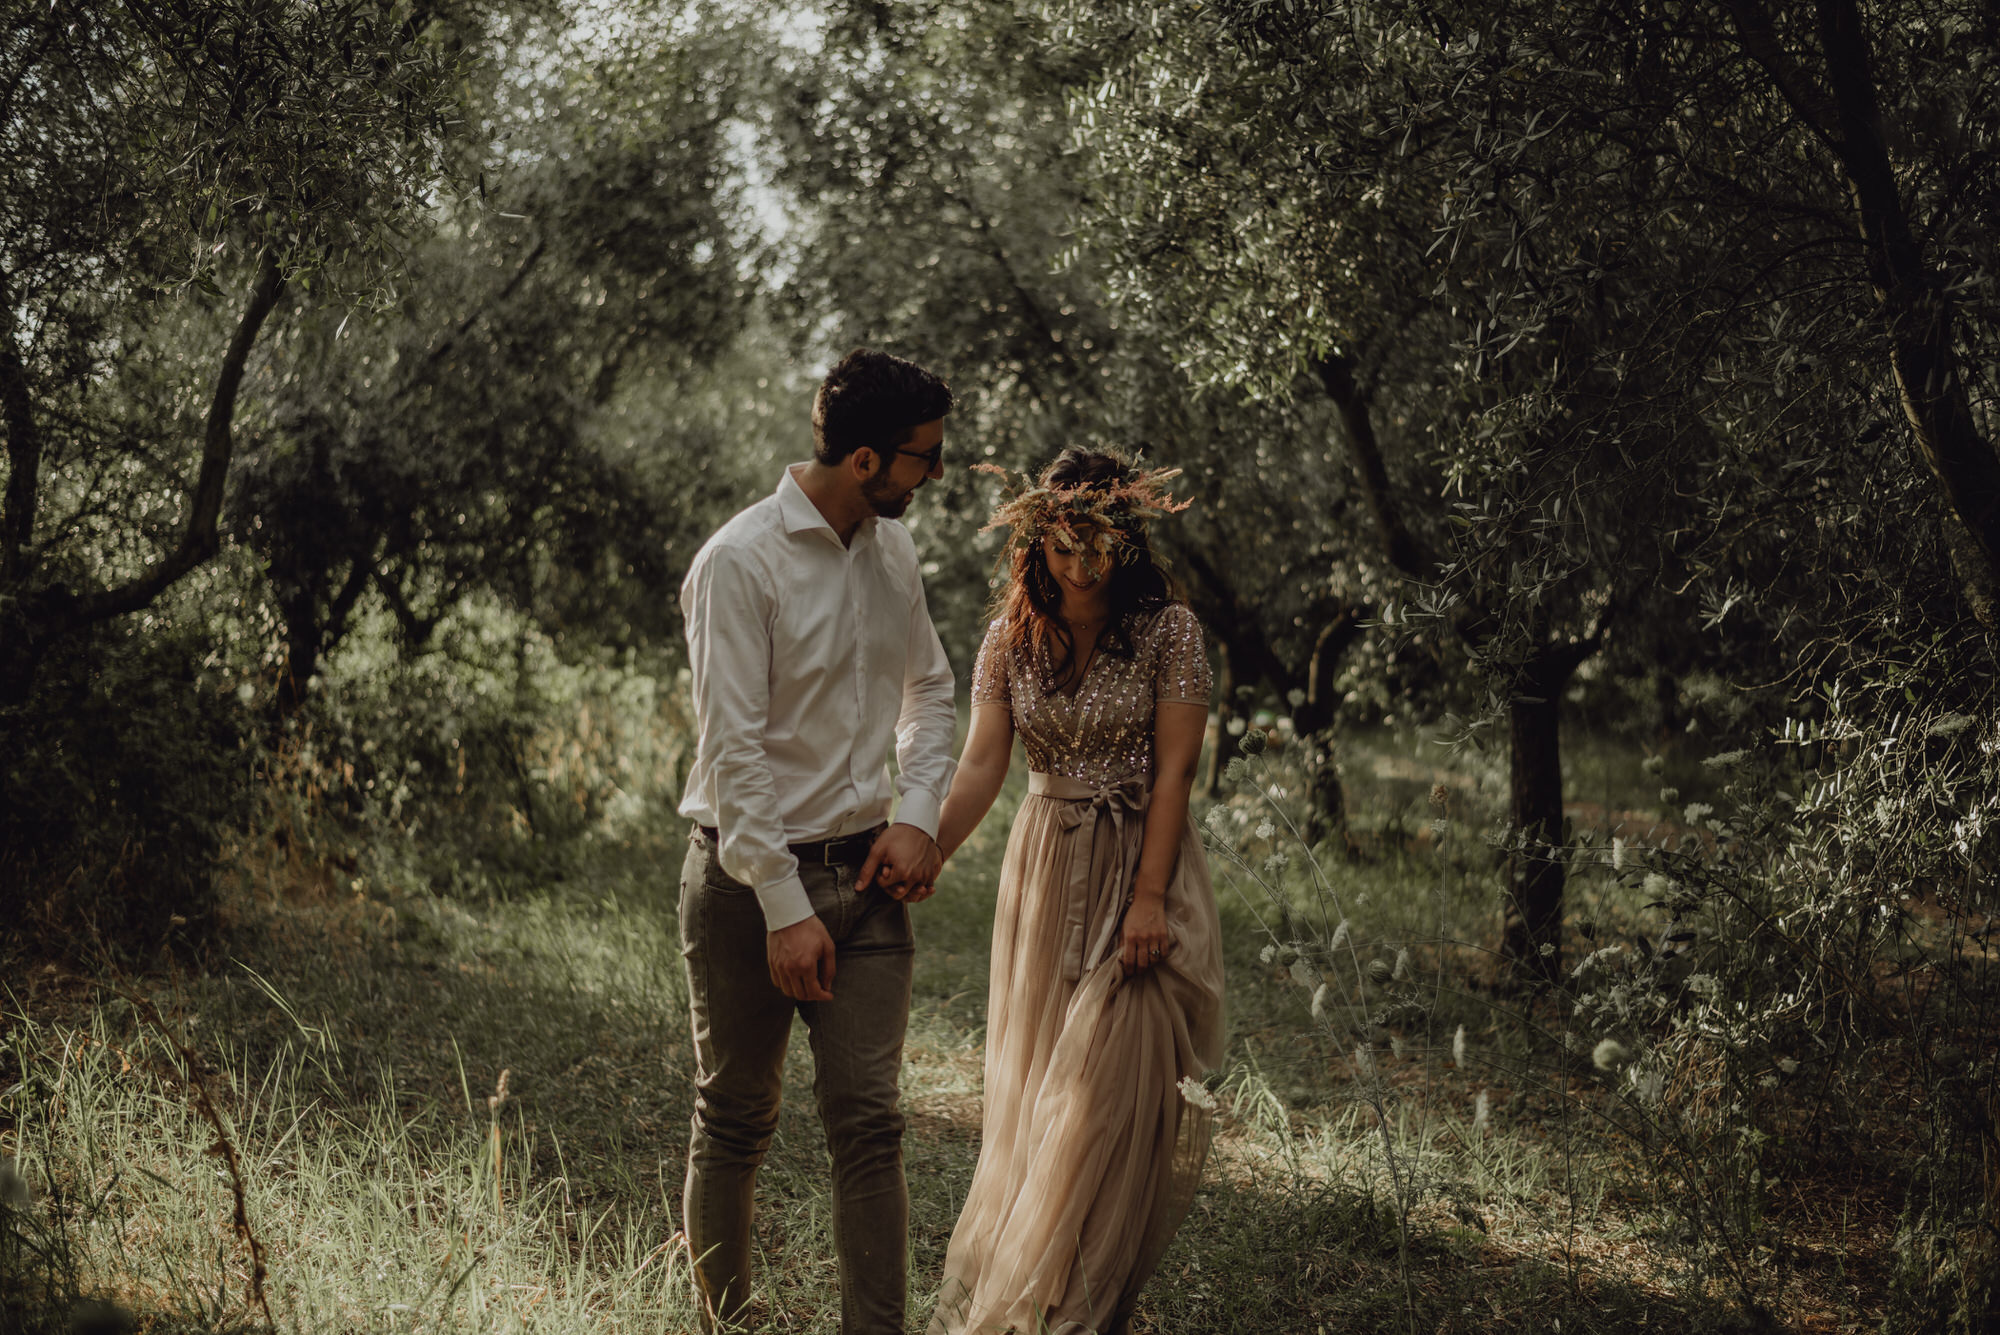 Romantic Pic-nic in an olive grove in Italy